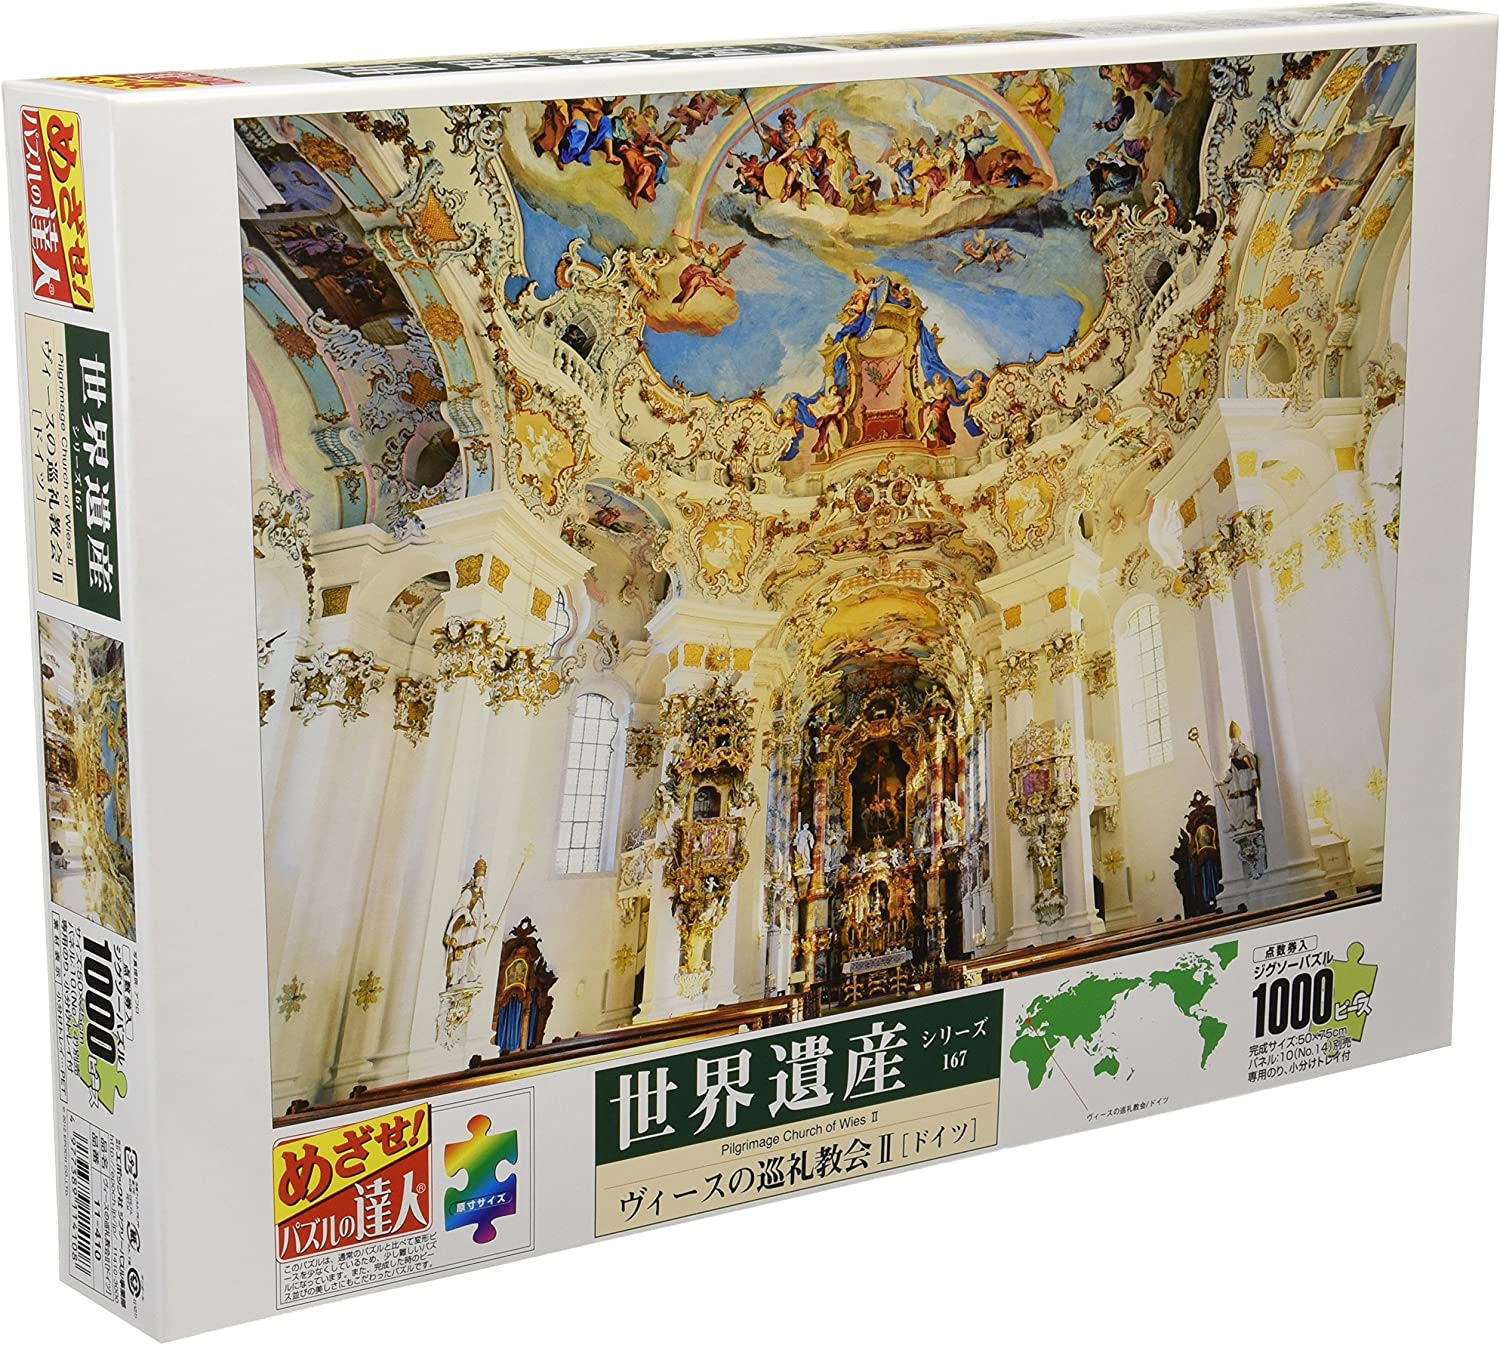 Pilgrimage Church II Germany 11410 of 1000 master piece of Wiesbaden  Puzzle Aim (japan import)